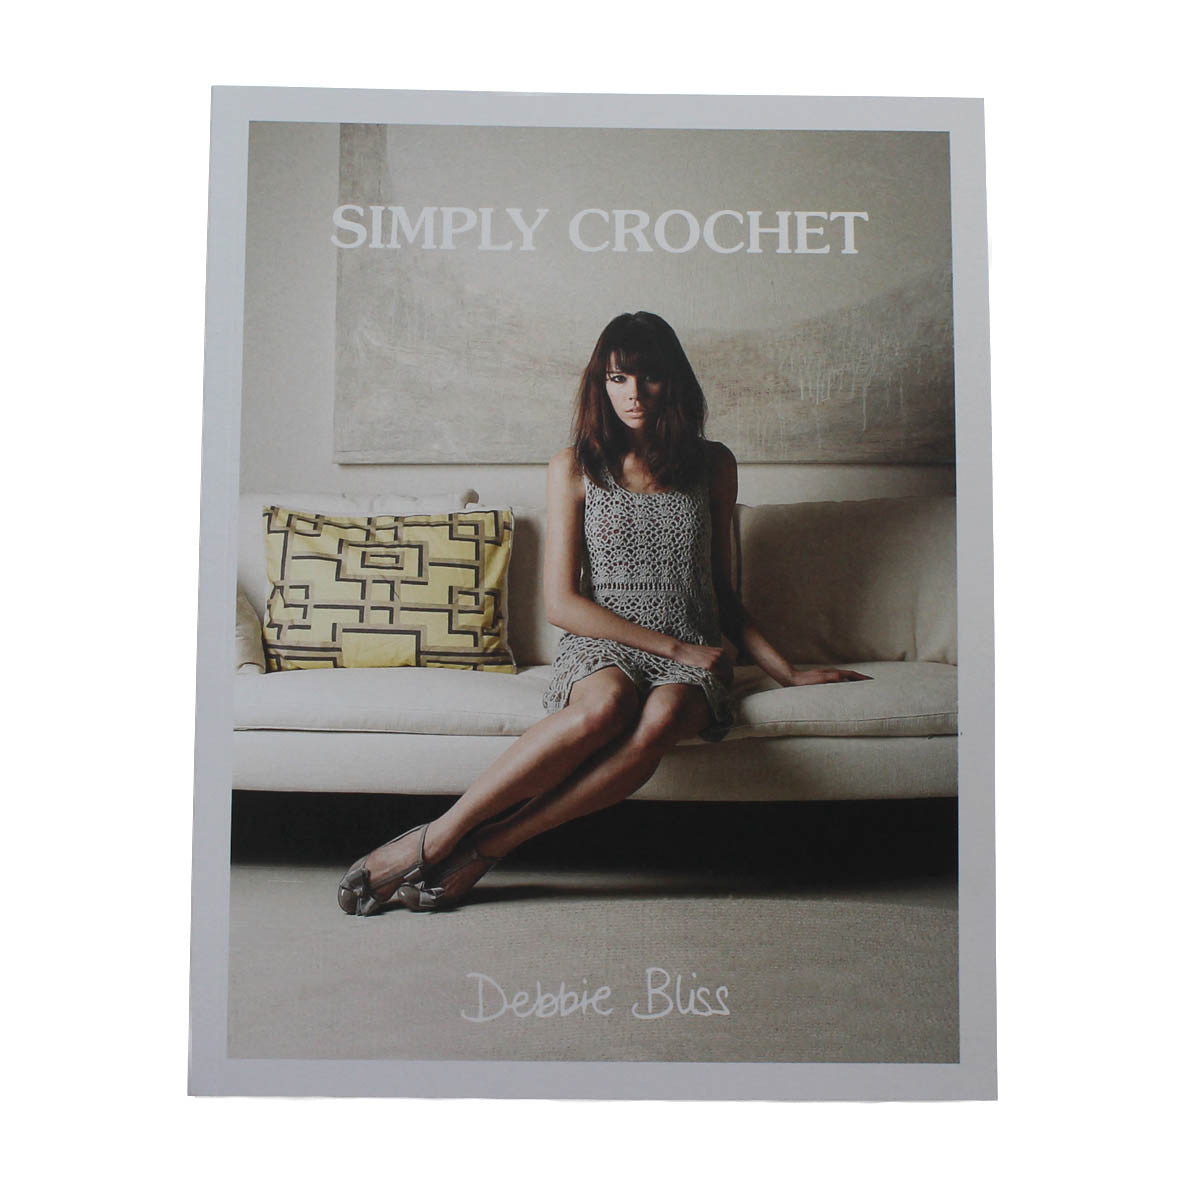 SIMPLY CROCHET - book by Debbie Bliss